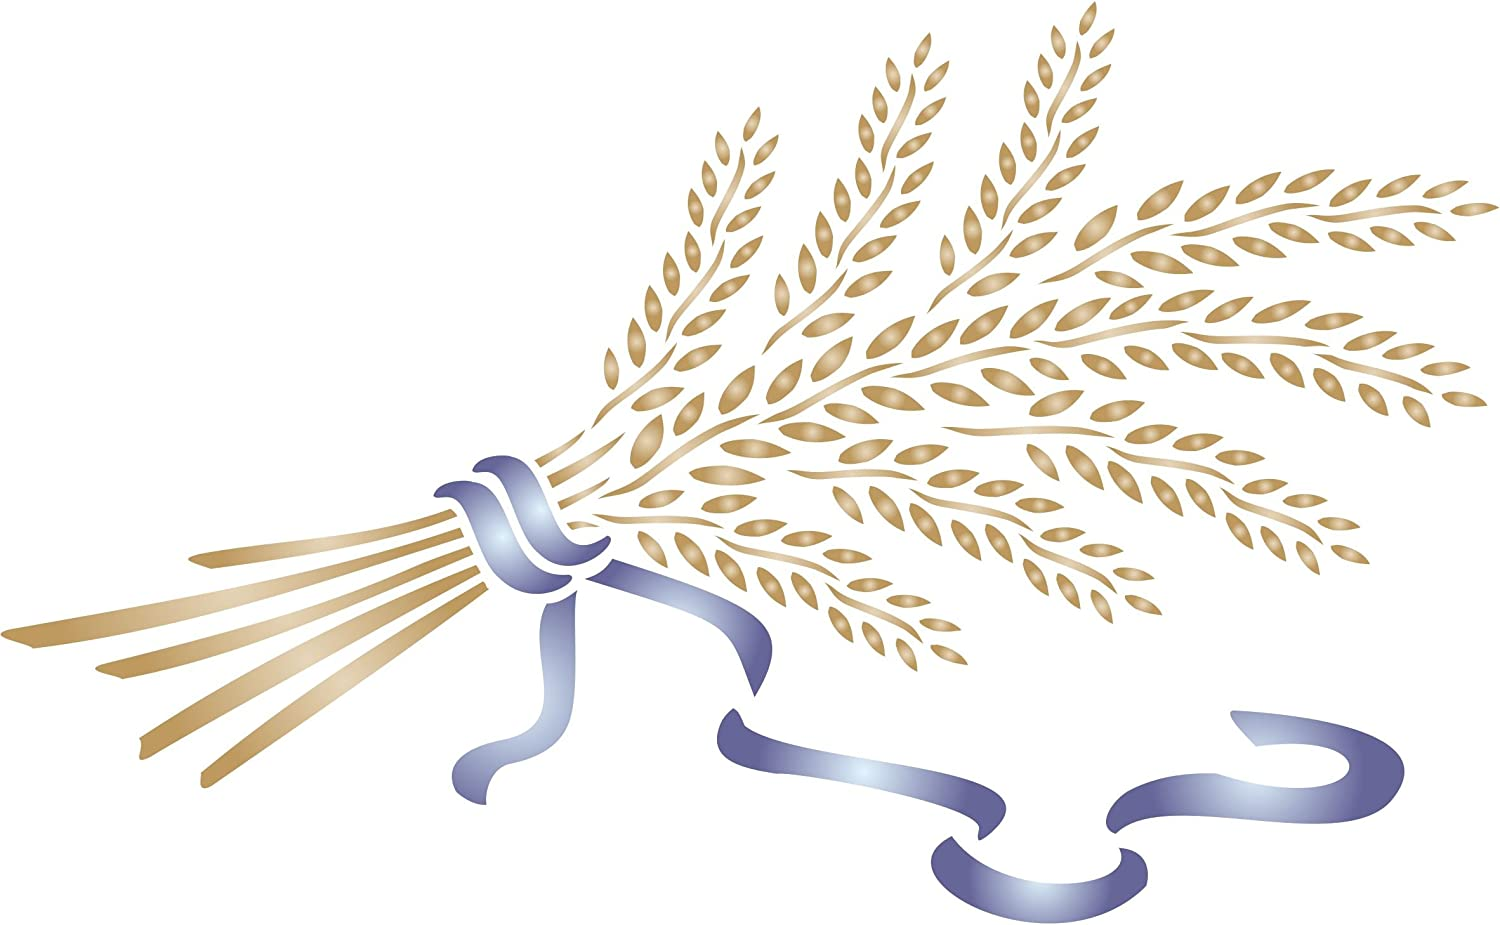 Wheat Sheaf Stencil, 13 x 8 inch - Vegetable Kitchen Stencils for Painting Template